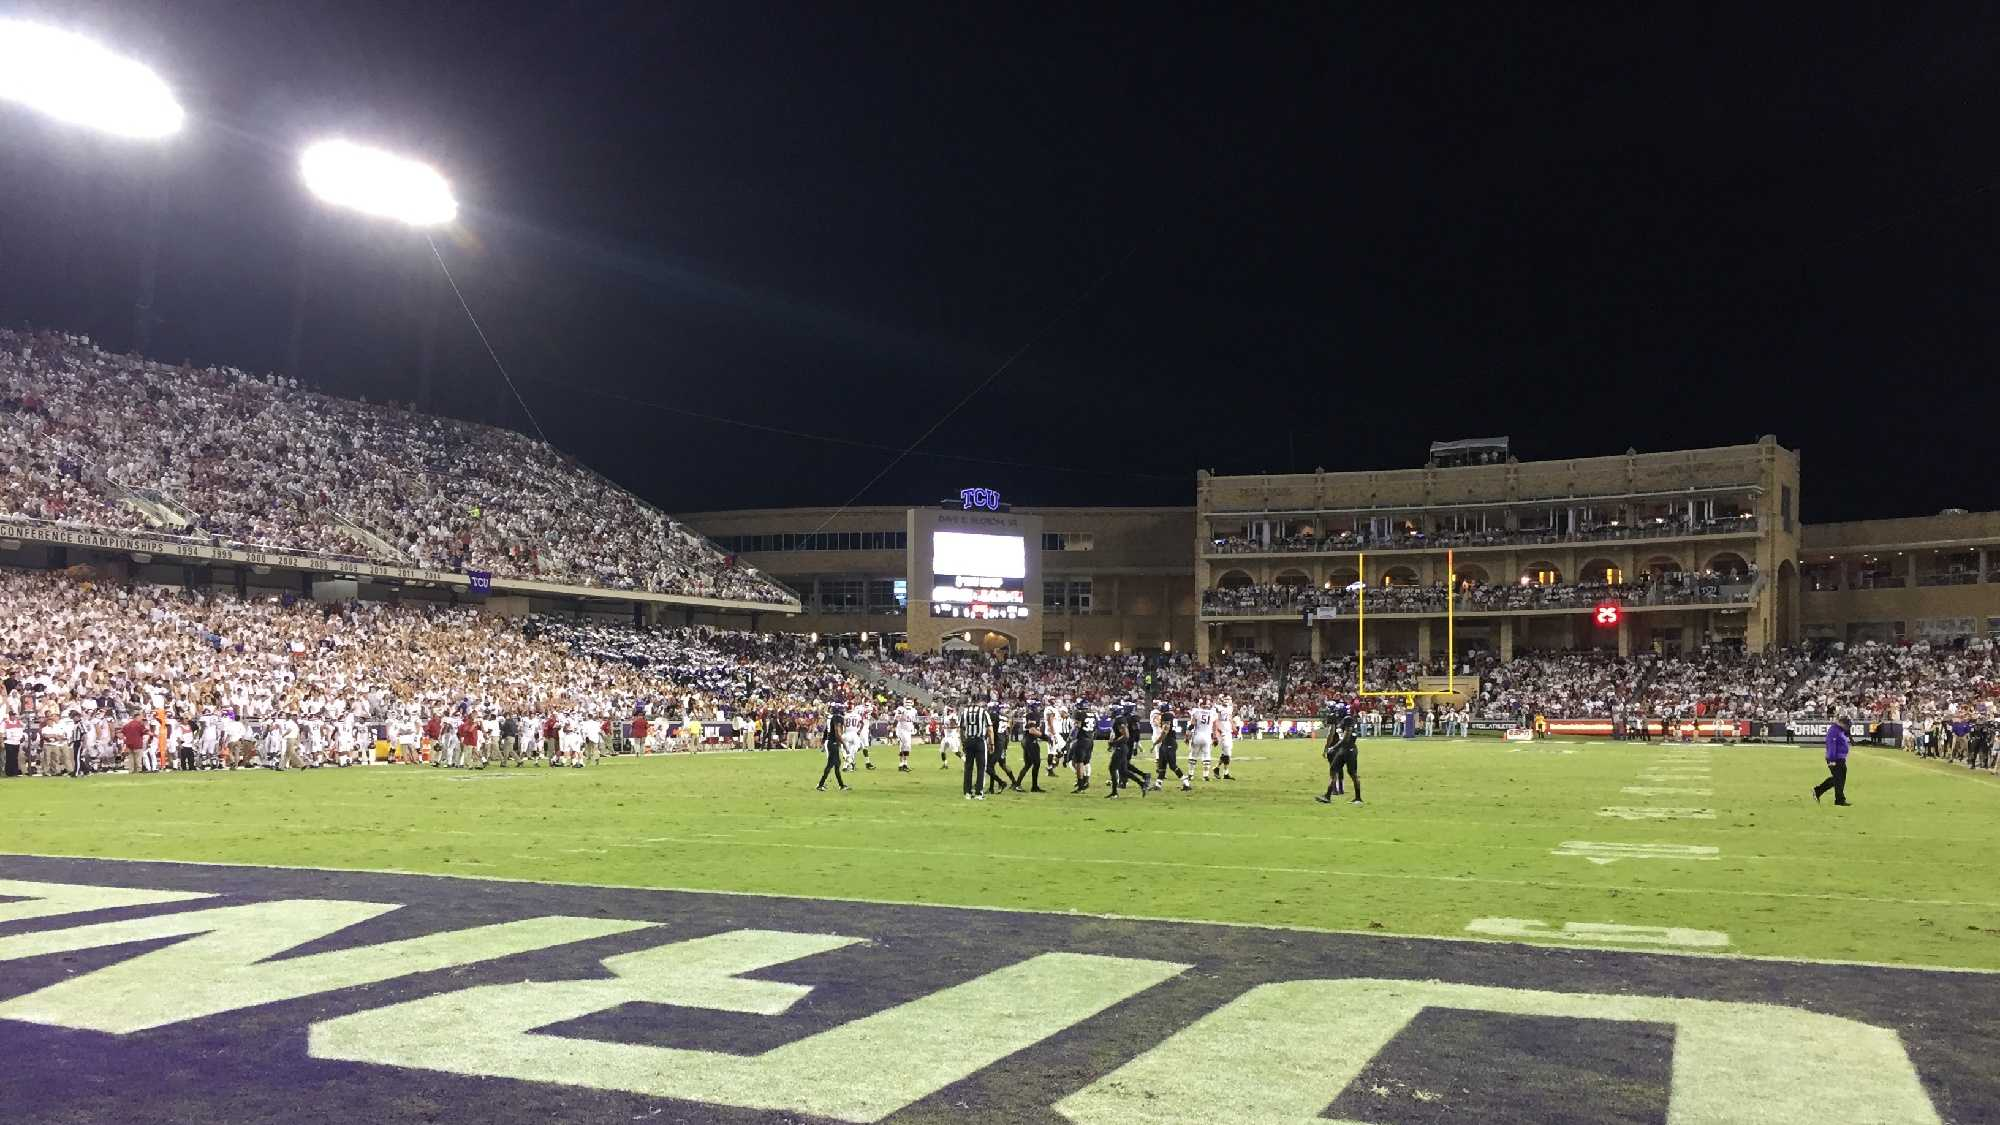 Amon. G. Carter Stadium Hogs Vs TCU